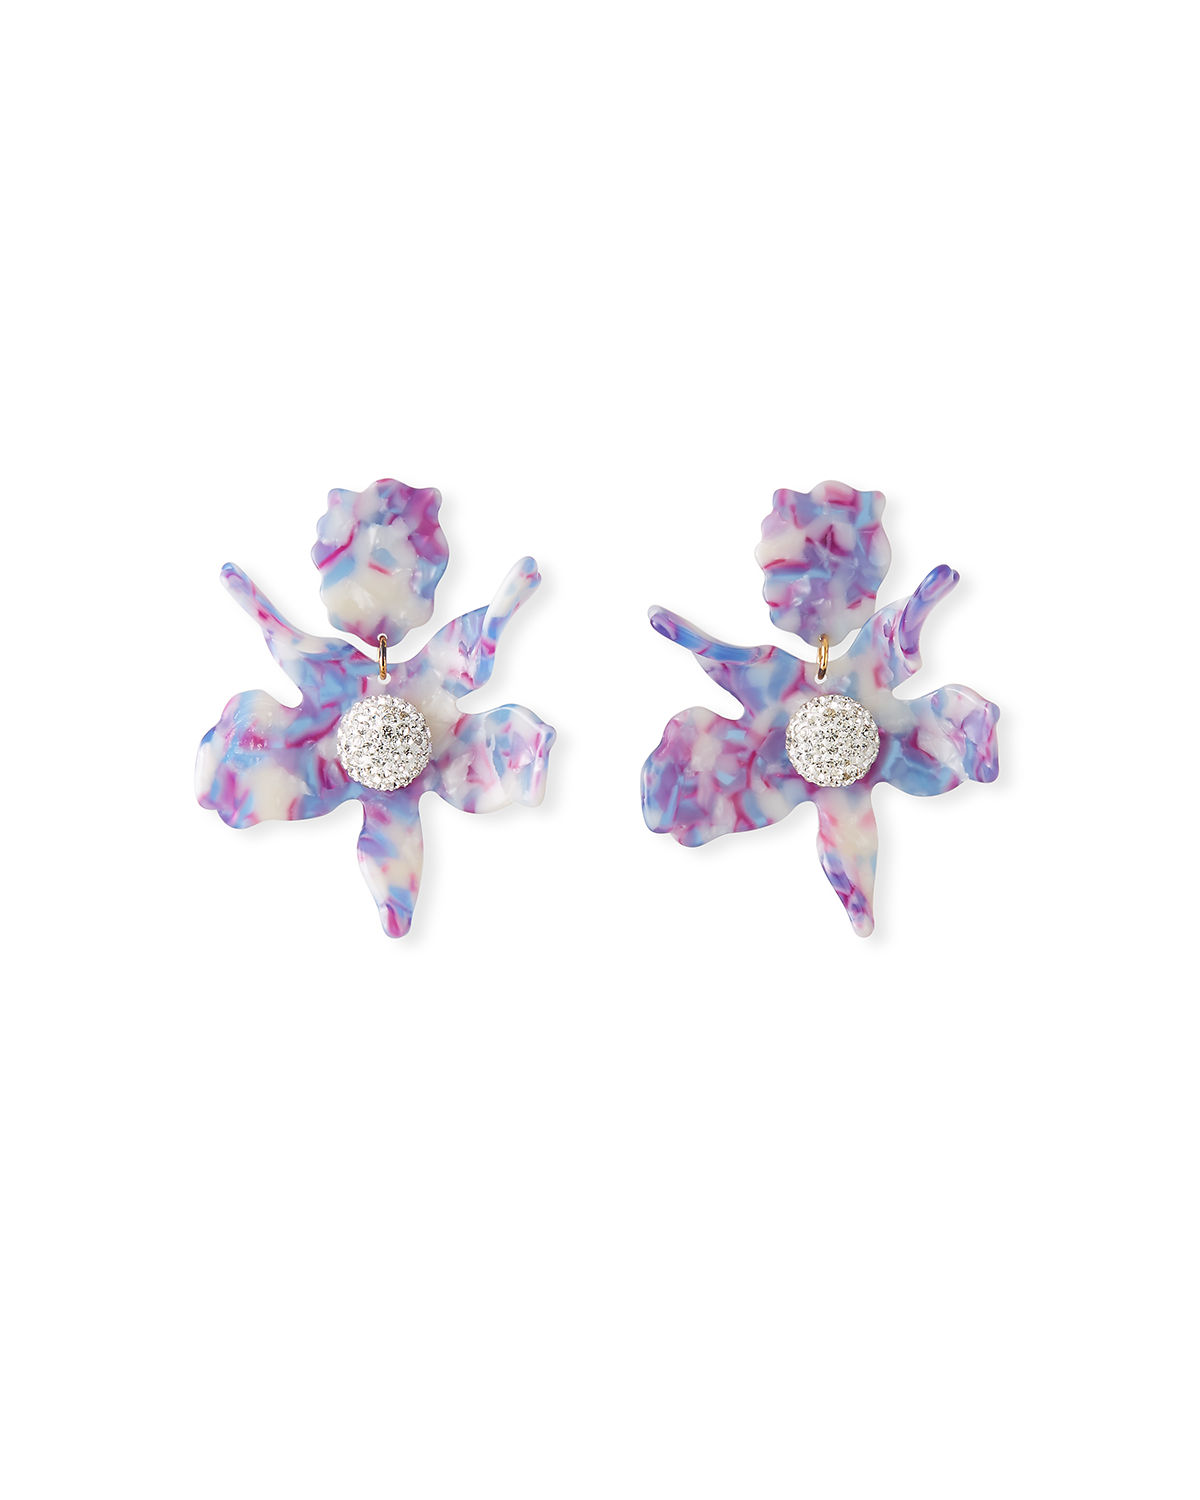 Lele Sadoughi Accessories LILY STUD EARRINGS W/ CRYSTALS